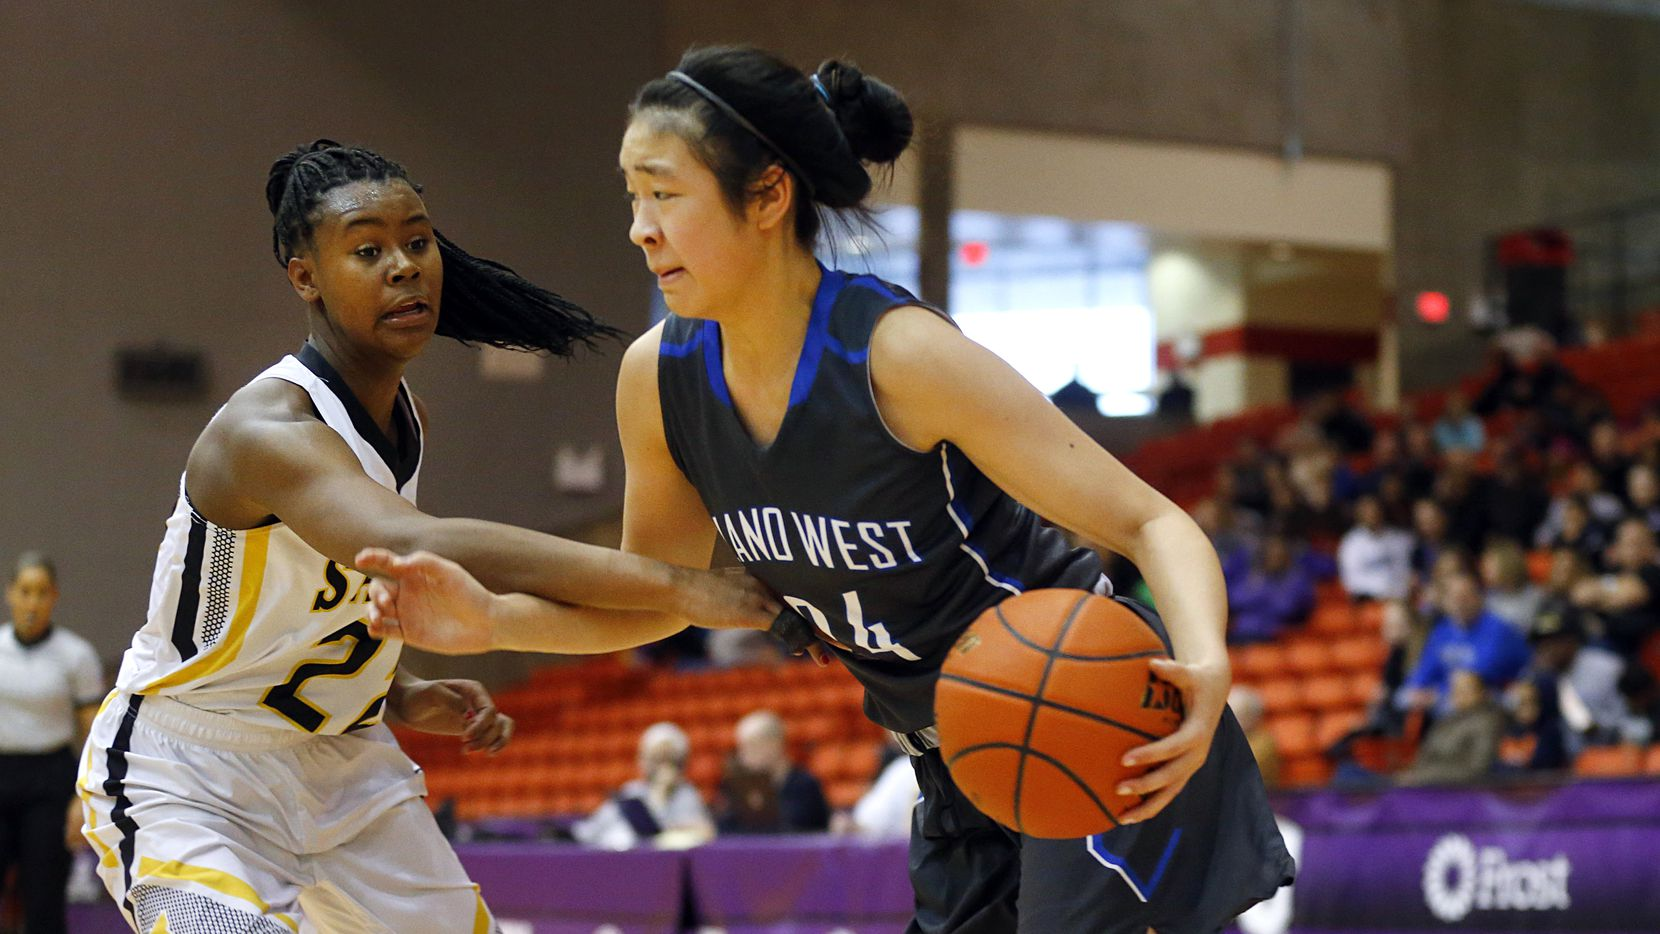 Plano West Natalie Chou (24) dribbles past Amarillo's Sidney Tinner (22) in the second half of the Class 6A Region I semifinal at Wilkerson-Greines Athletic Center in Fort Worth, Saturday, February 28, 2015. (Tom Fox/The Dallas Morning News)